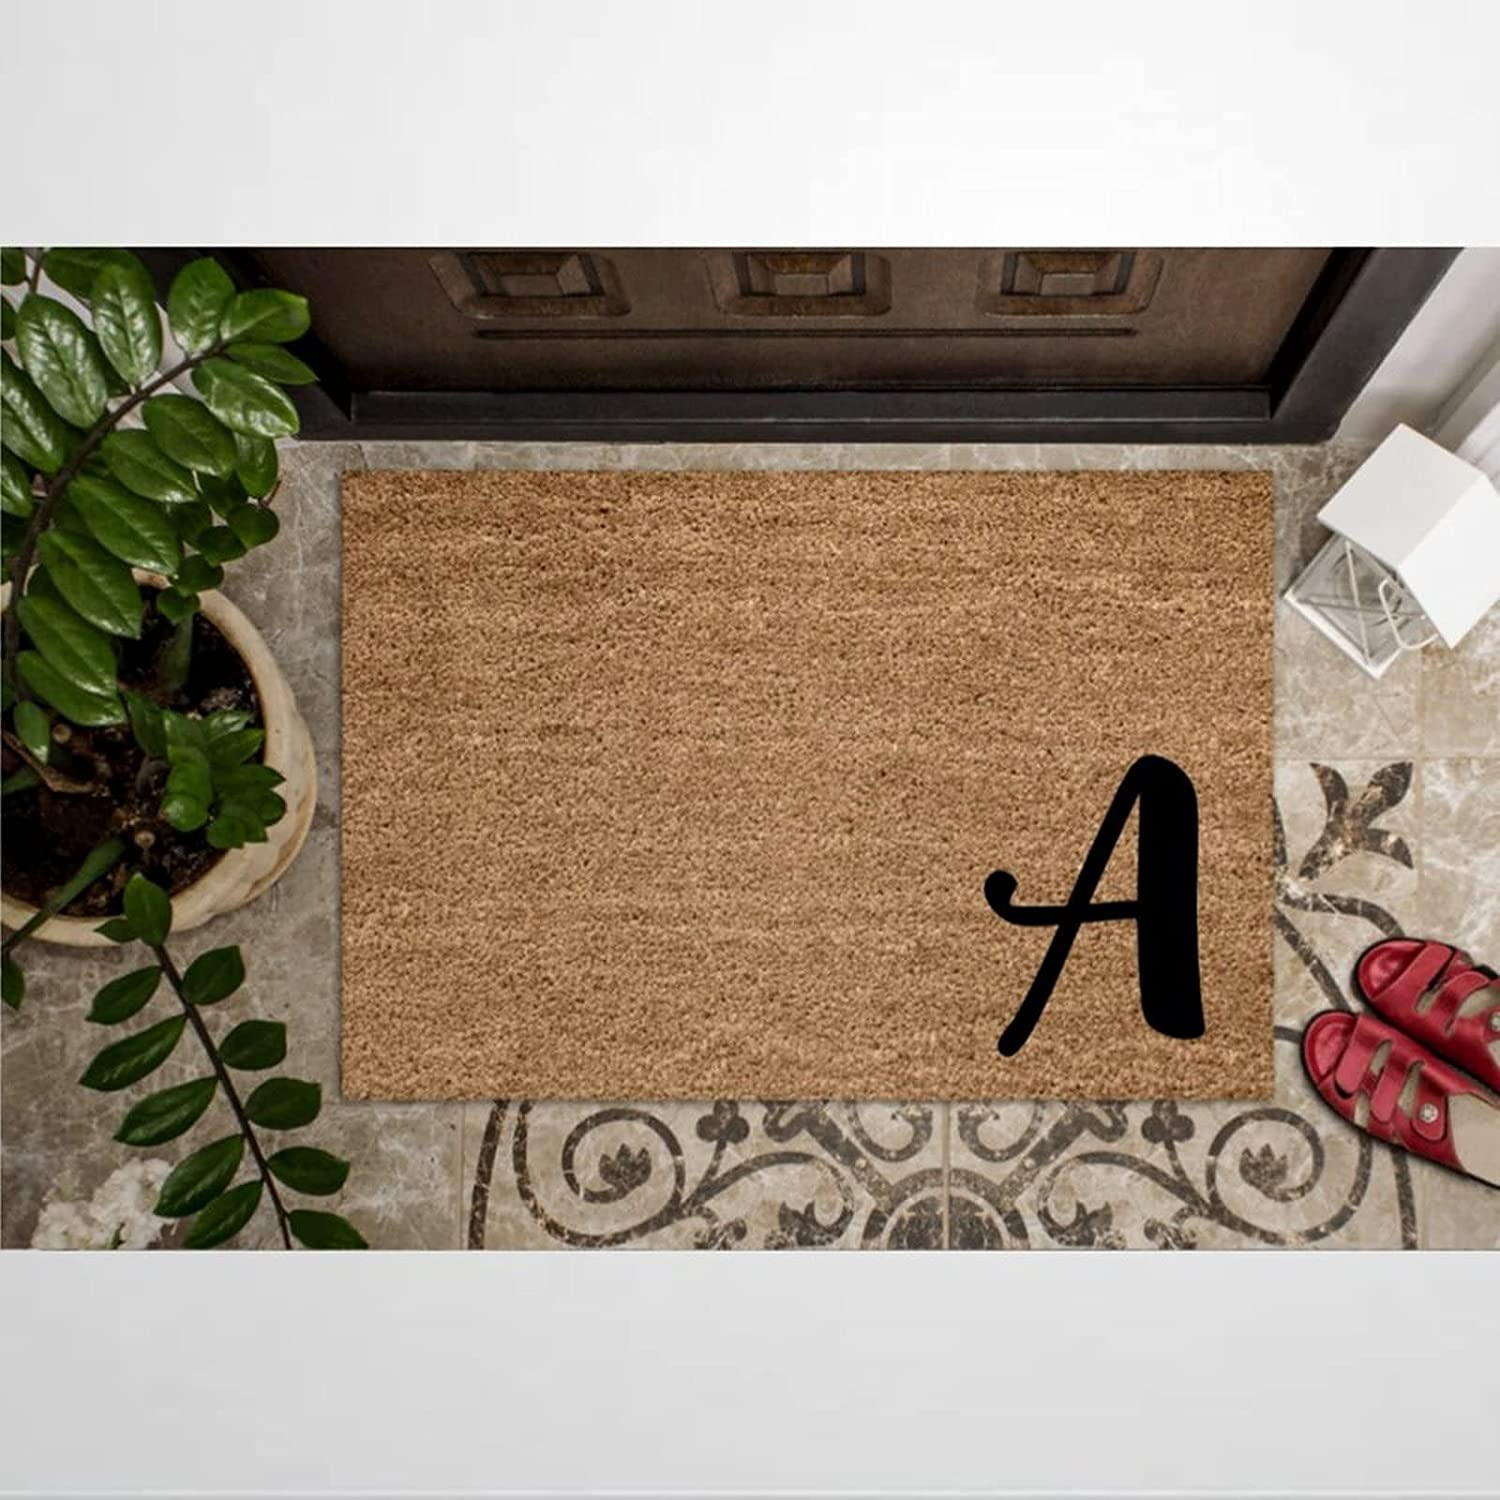 Custom First Or Last Special price for a limited time Monogram Coir Doormat Door Welcome Rustic M Super popular specialty store